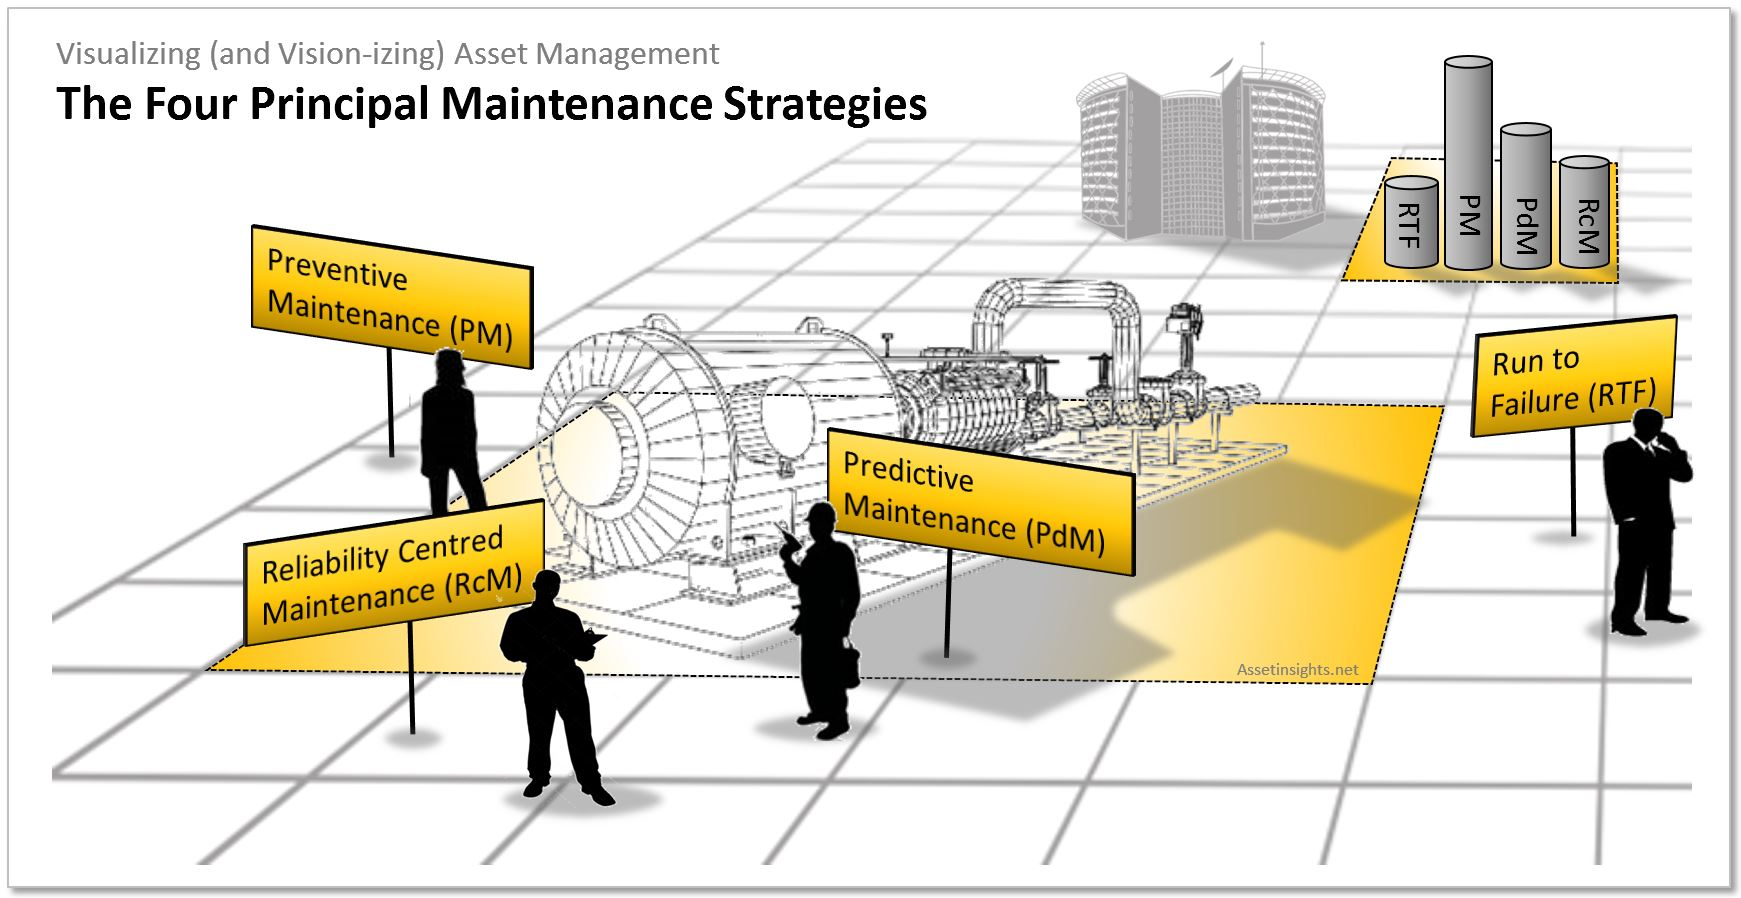 Alignment of the four different types of maintenance strategies across the asset portfolio on decisions that are risk-based and consider the whole-life of assets will result in a maintenance mix that is in conformity with ISO 55001 standards